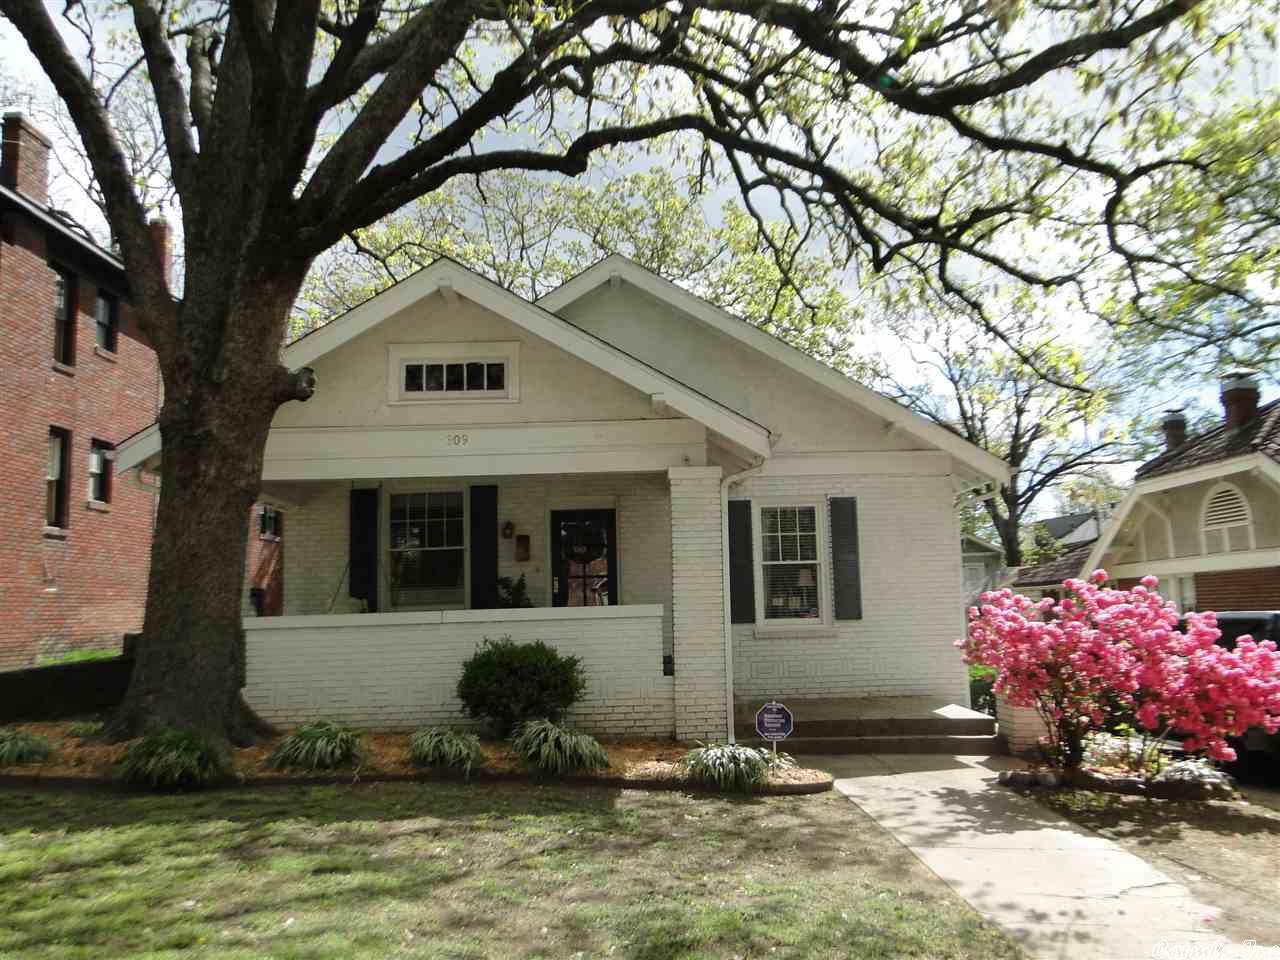 609 N Pine, Little Rock, AR 72205